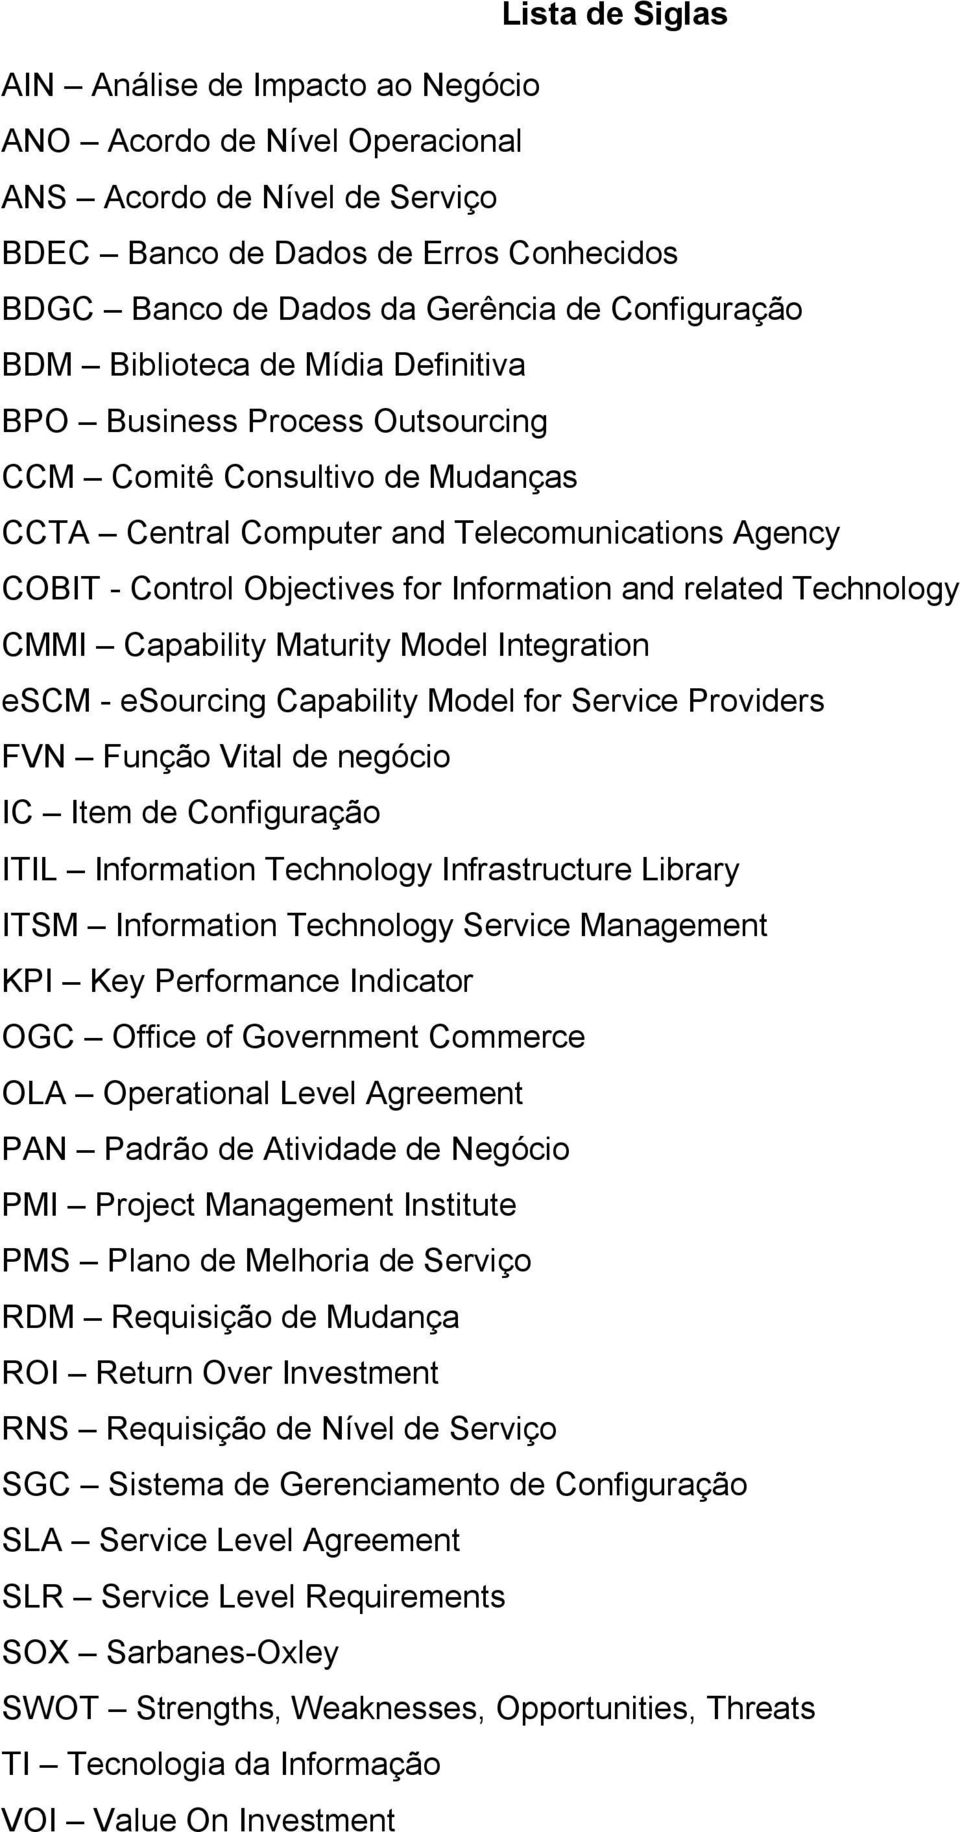 Information and related Technology CMMI Capability Maturity Model Integration escm - esourcing Capability Model for Service Providers FVN Função Vital de negócio IC Item de Configuração ITIL